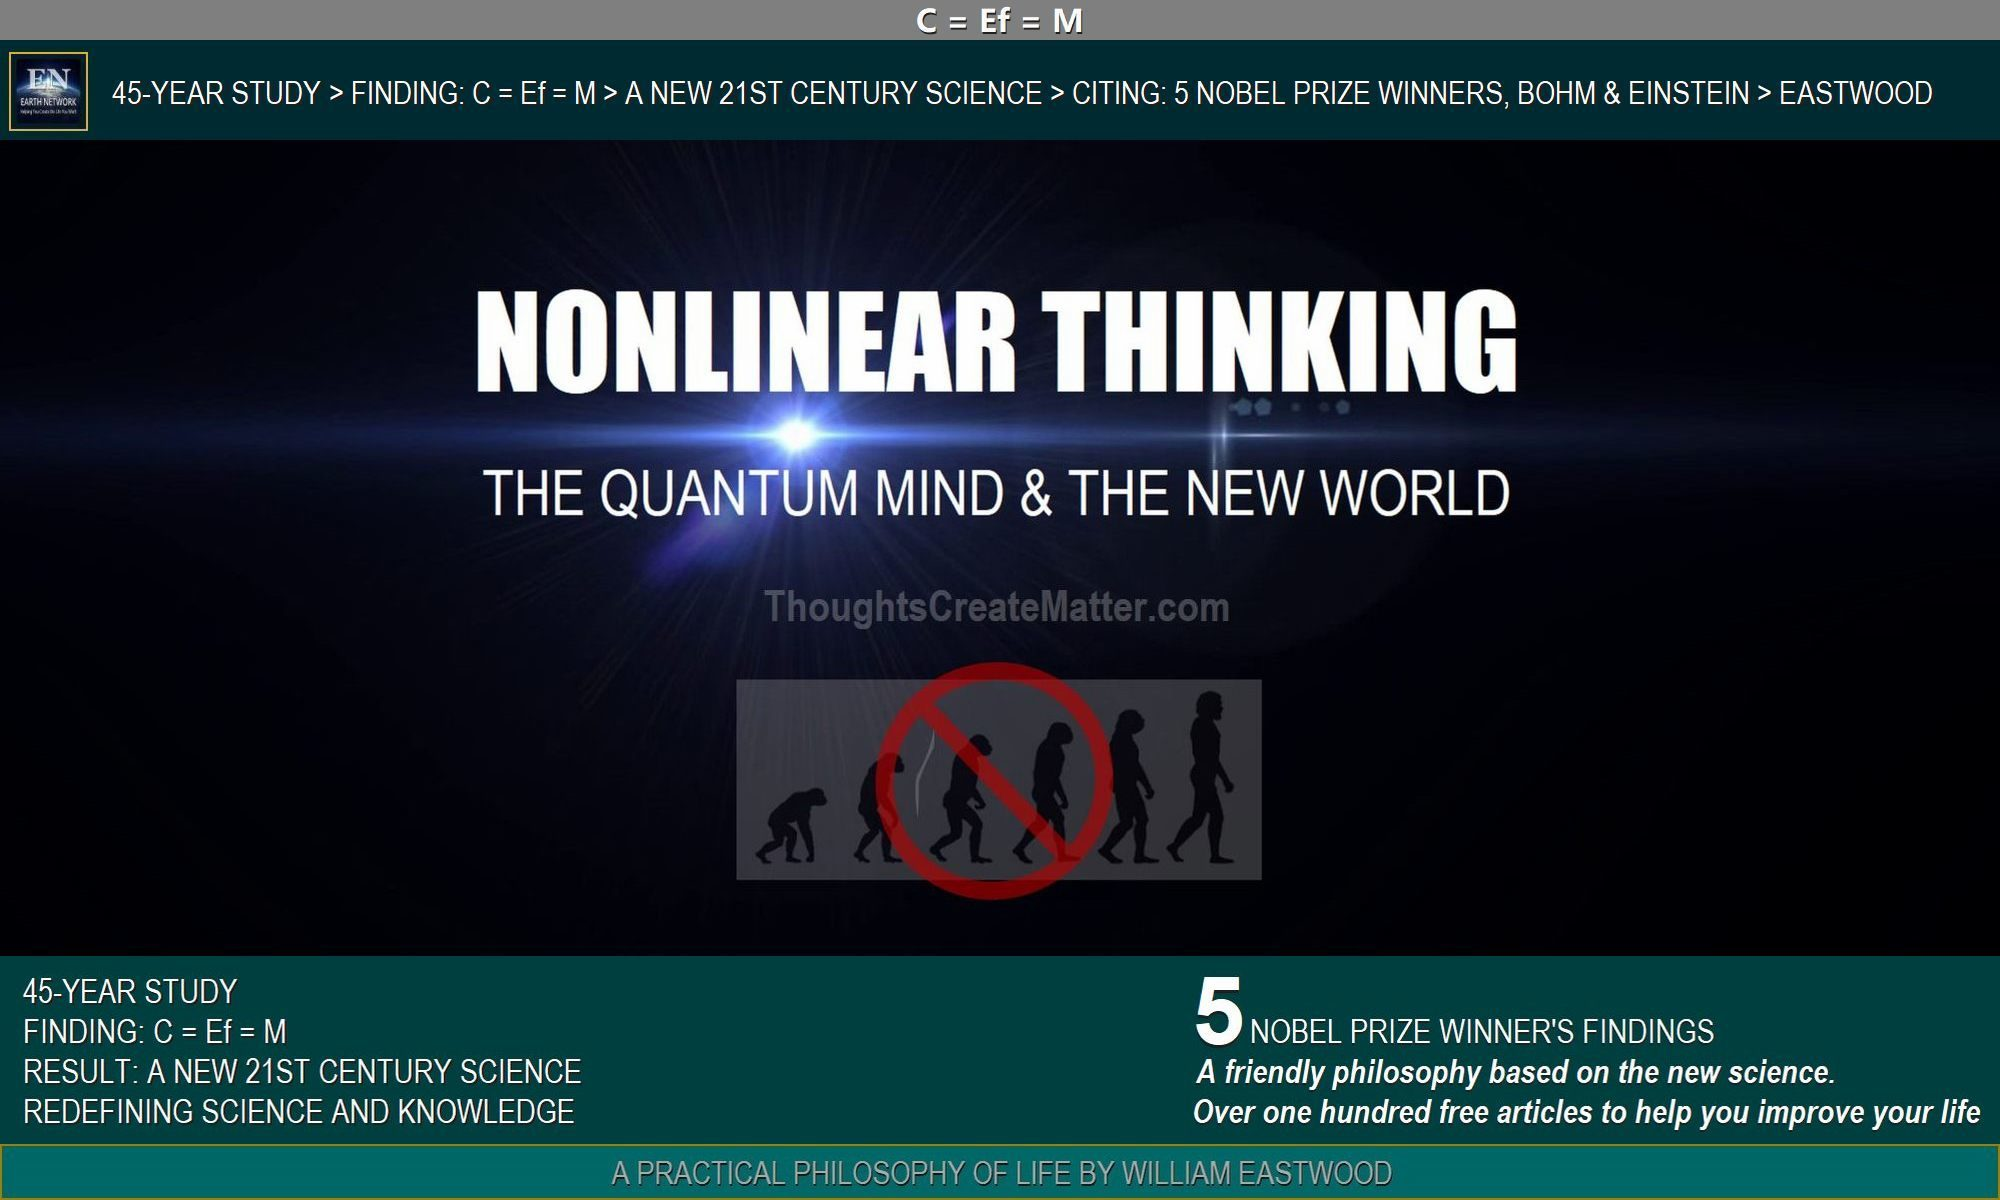 light prism depicts what-is-nonlinear-thinking-the-quantum-mind-new-world-consciousness-science